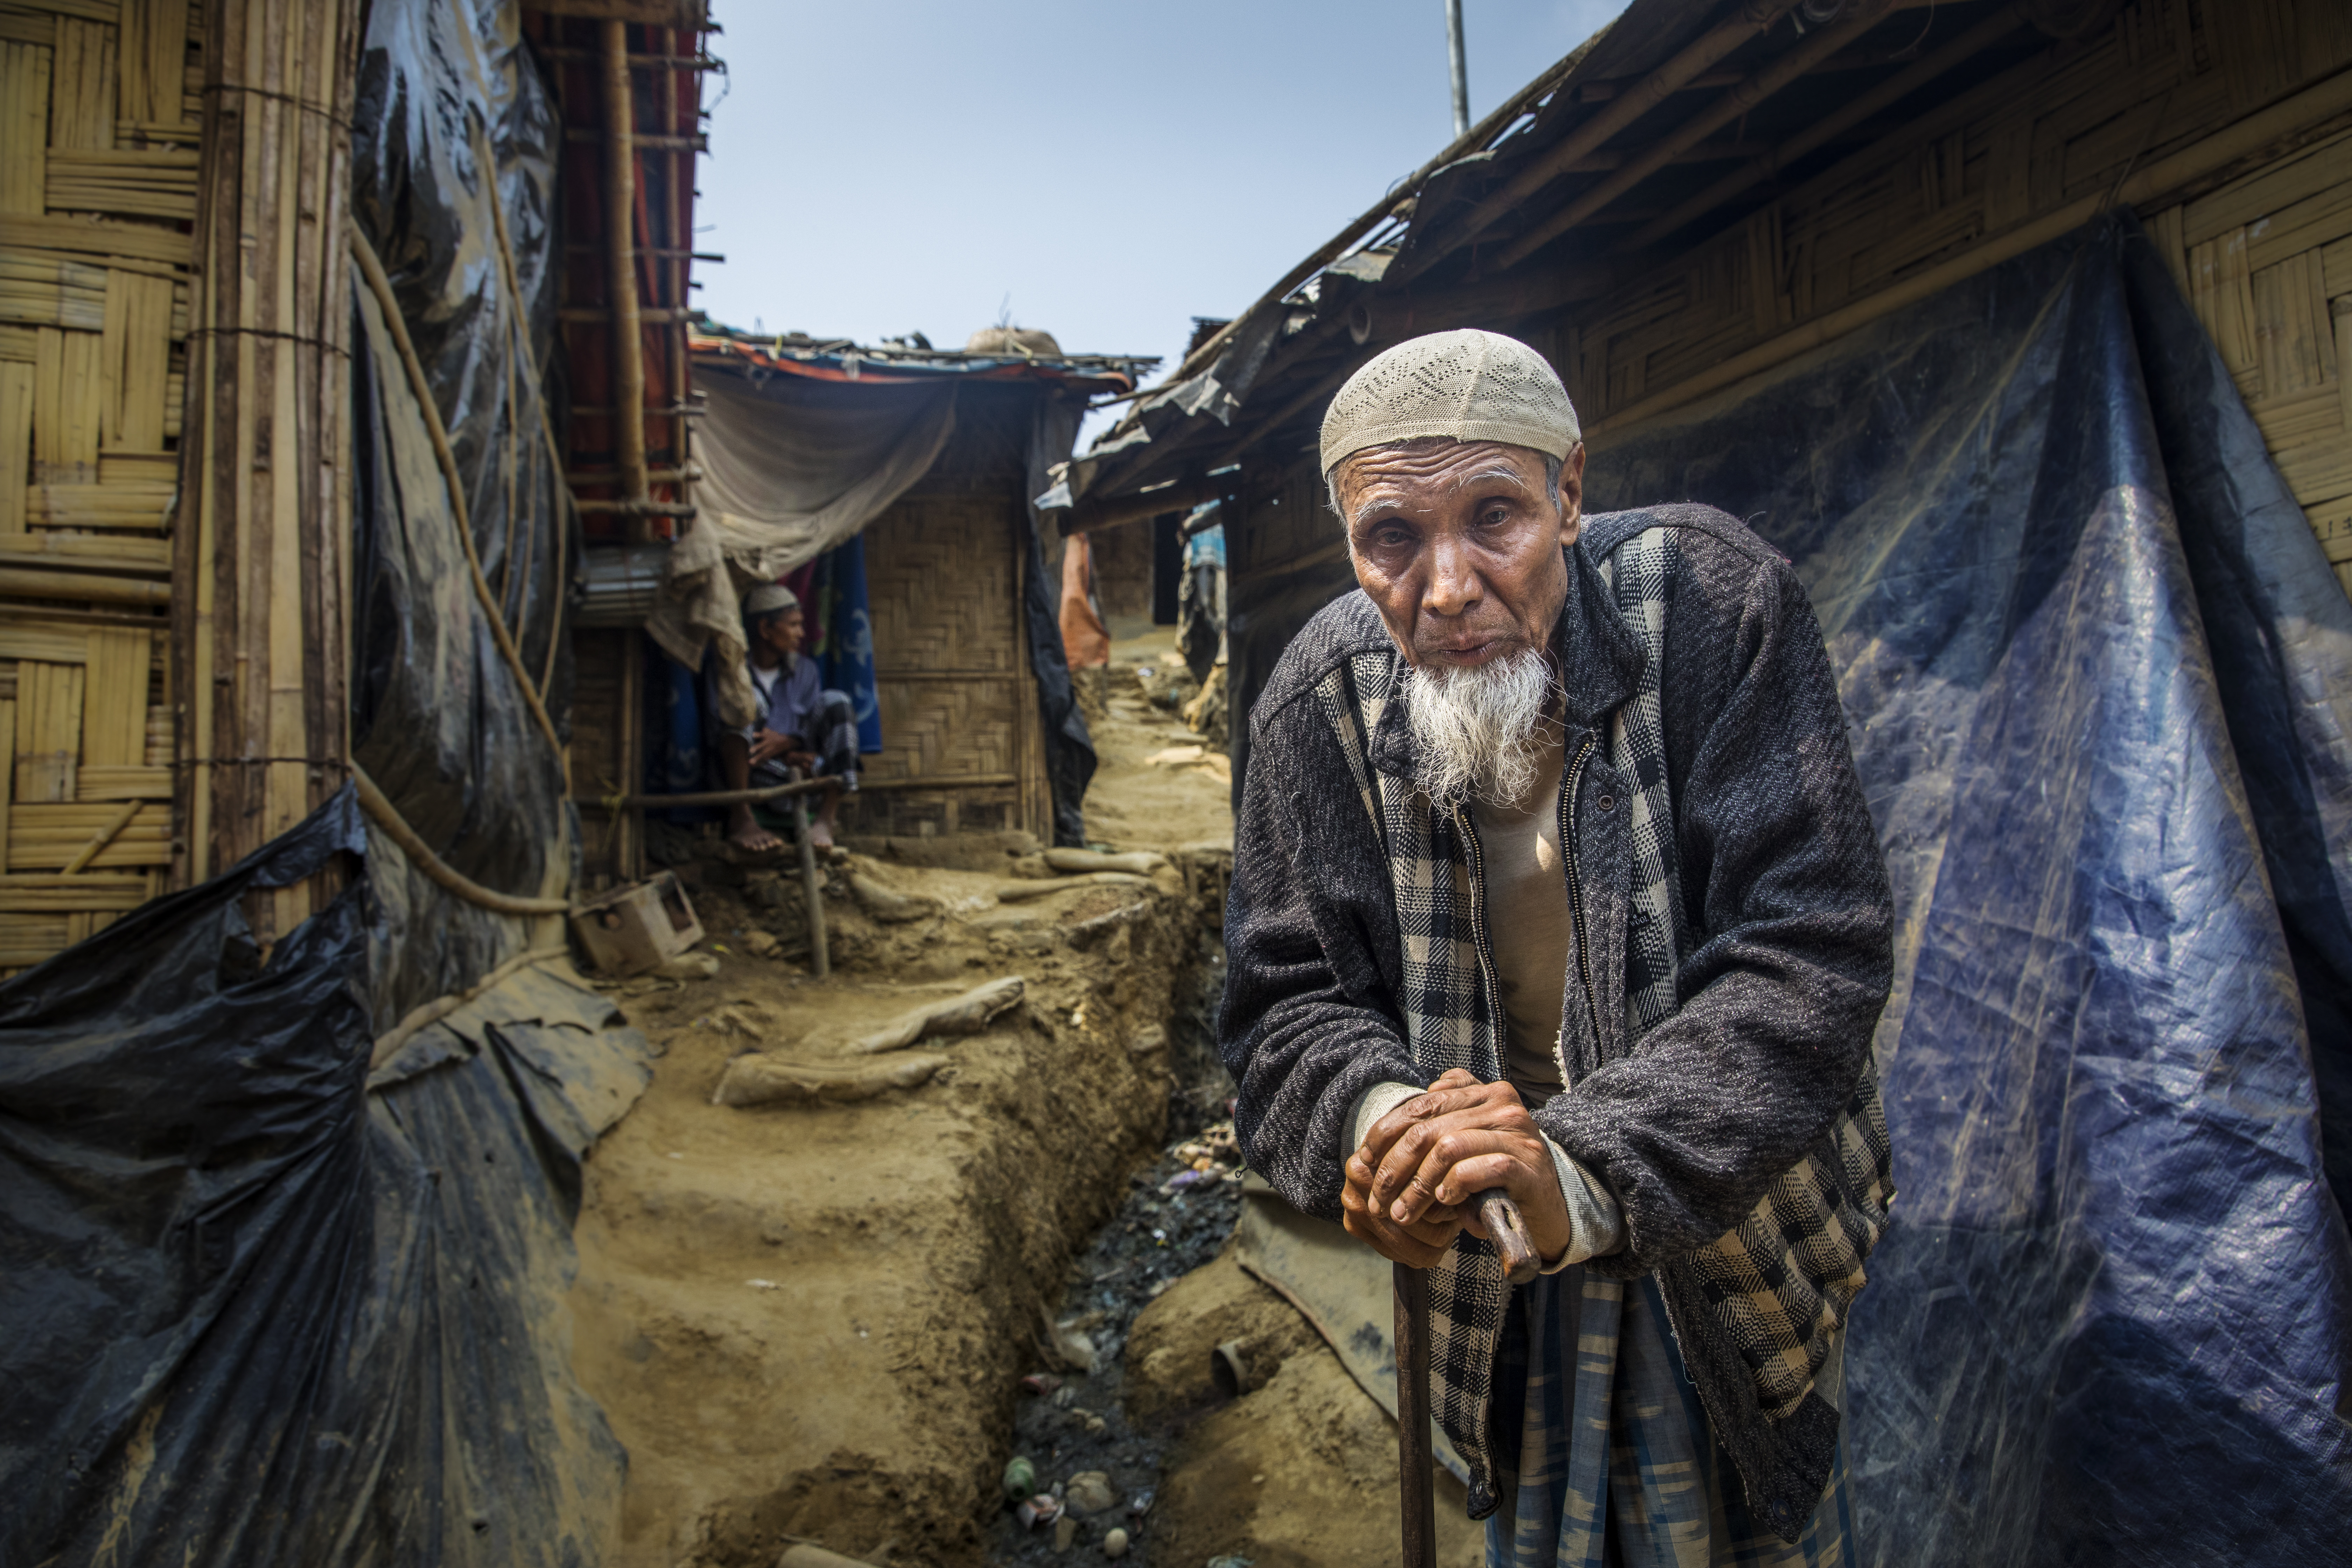 An elderly man leaning on a walking stick and standing in a narrow alley between two huts.